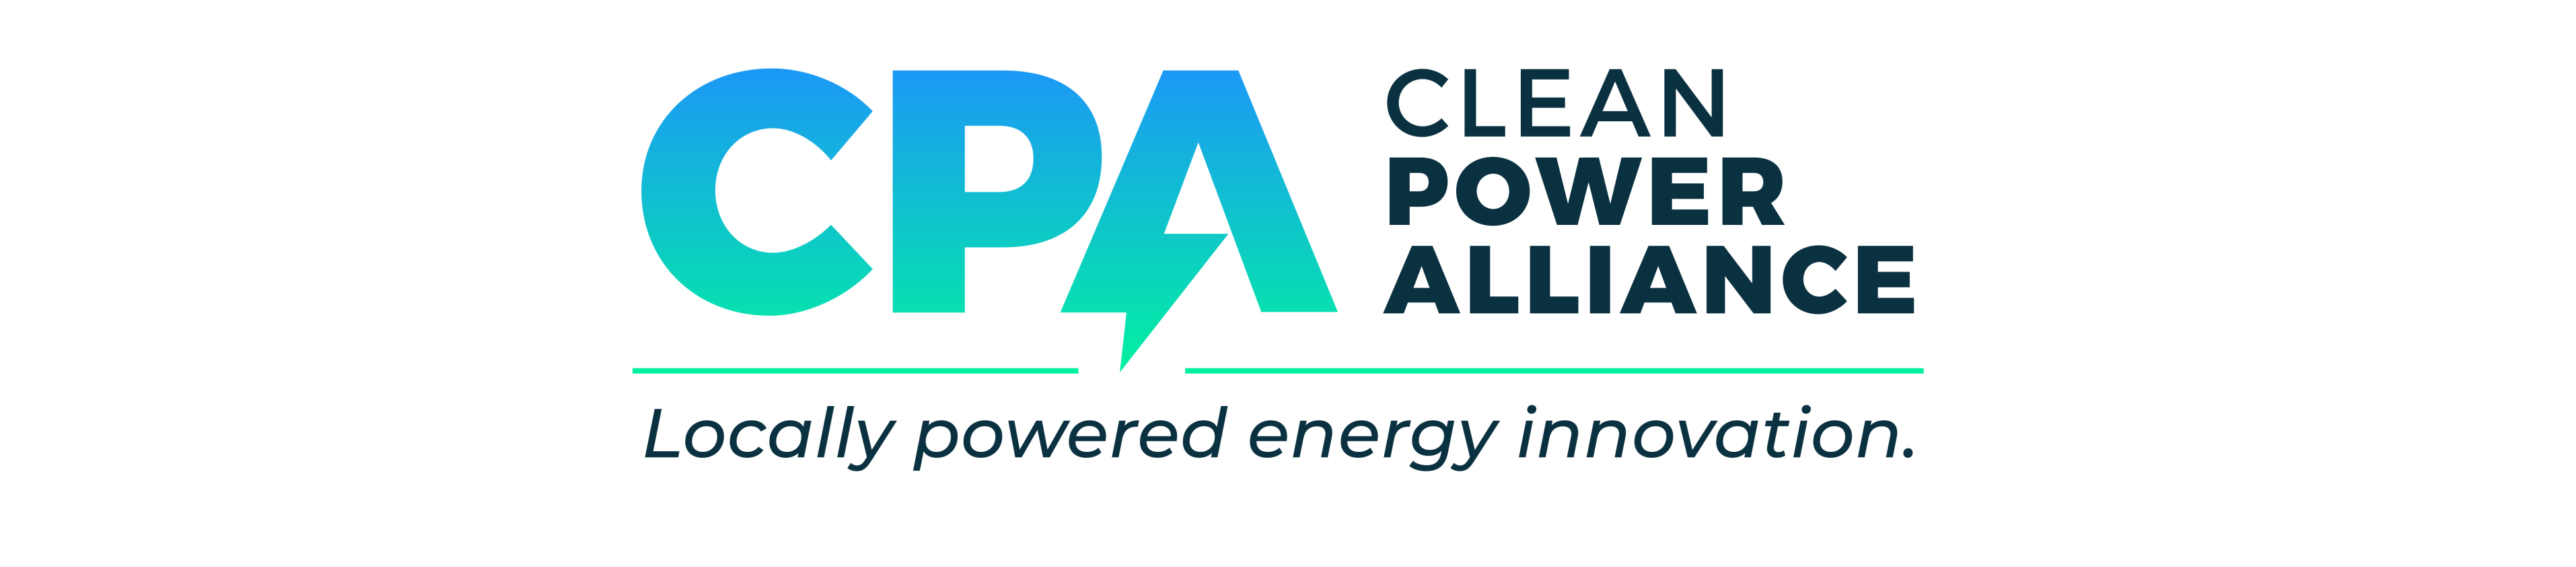 CPA Clean Power Alliance - Locally powered energy innovation